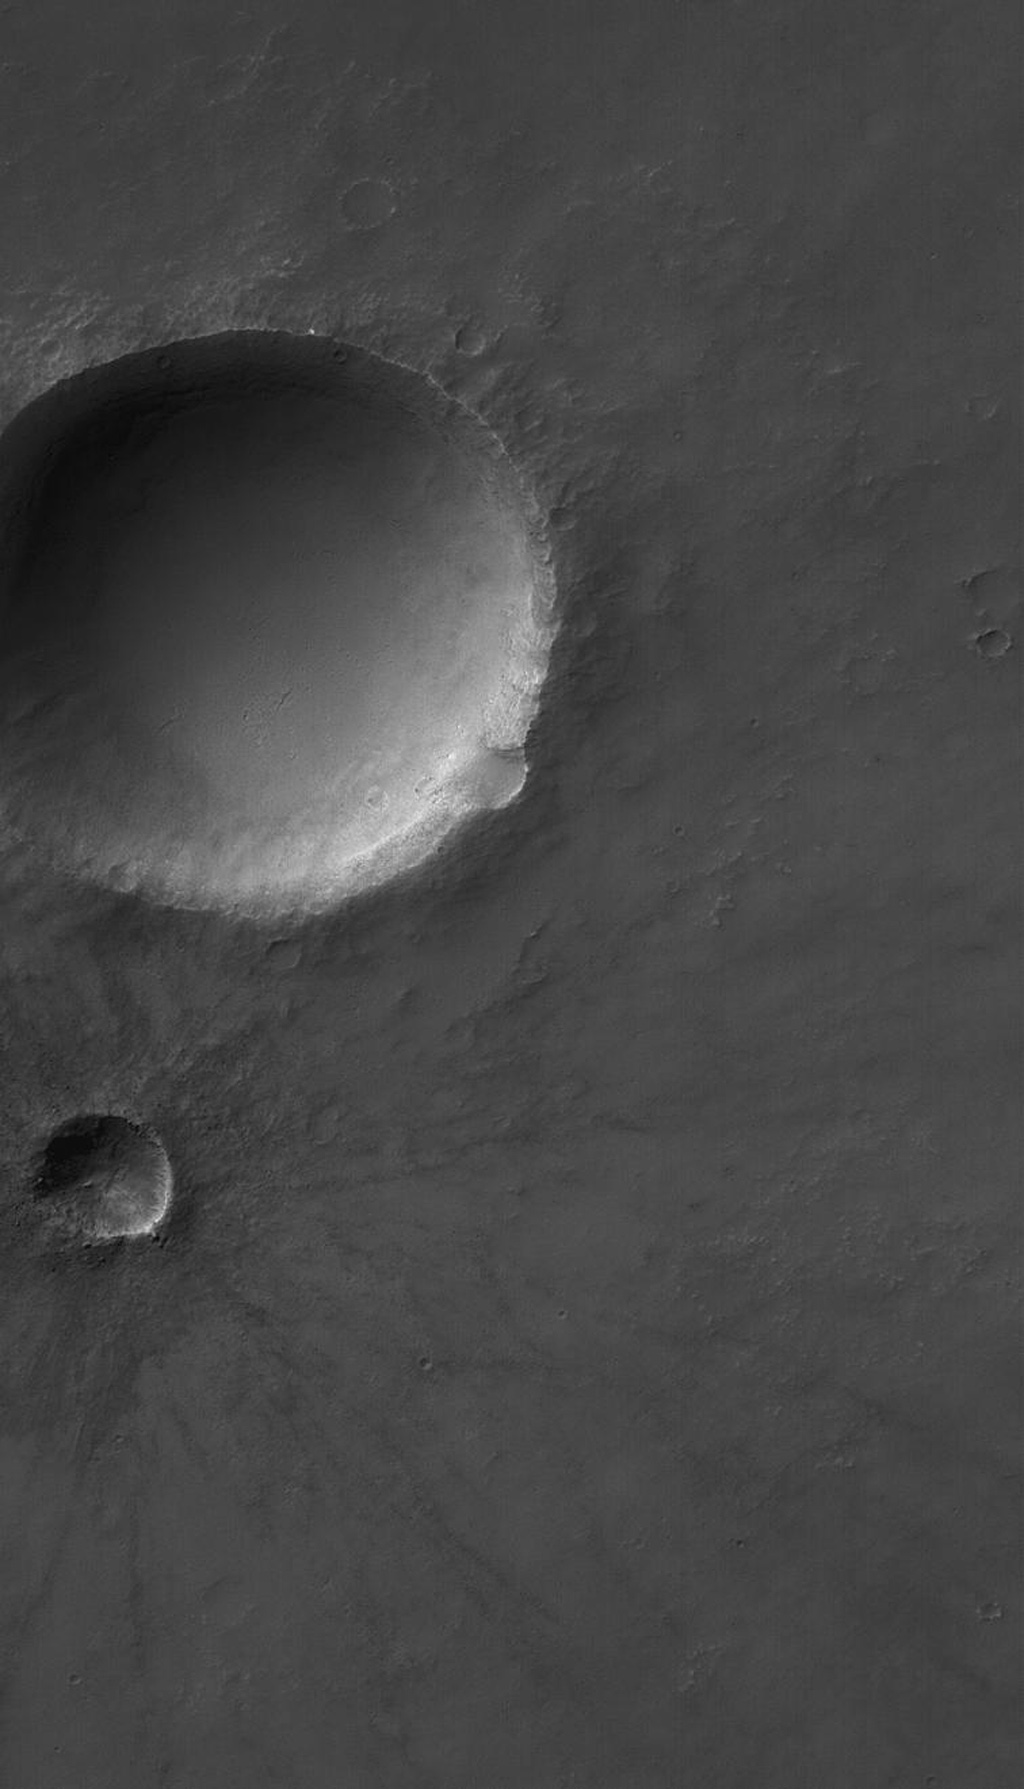 NASA's Mars Global Surveyor shows several meteor impact craters on Solis Planum on Mars. The second-largest crater in this scene is relatively young and fresh, exhibiting arrayed ejecta pattern and numerous boulders near its rim.